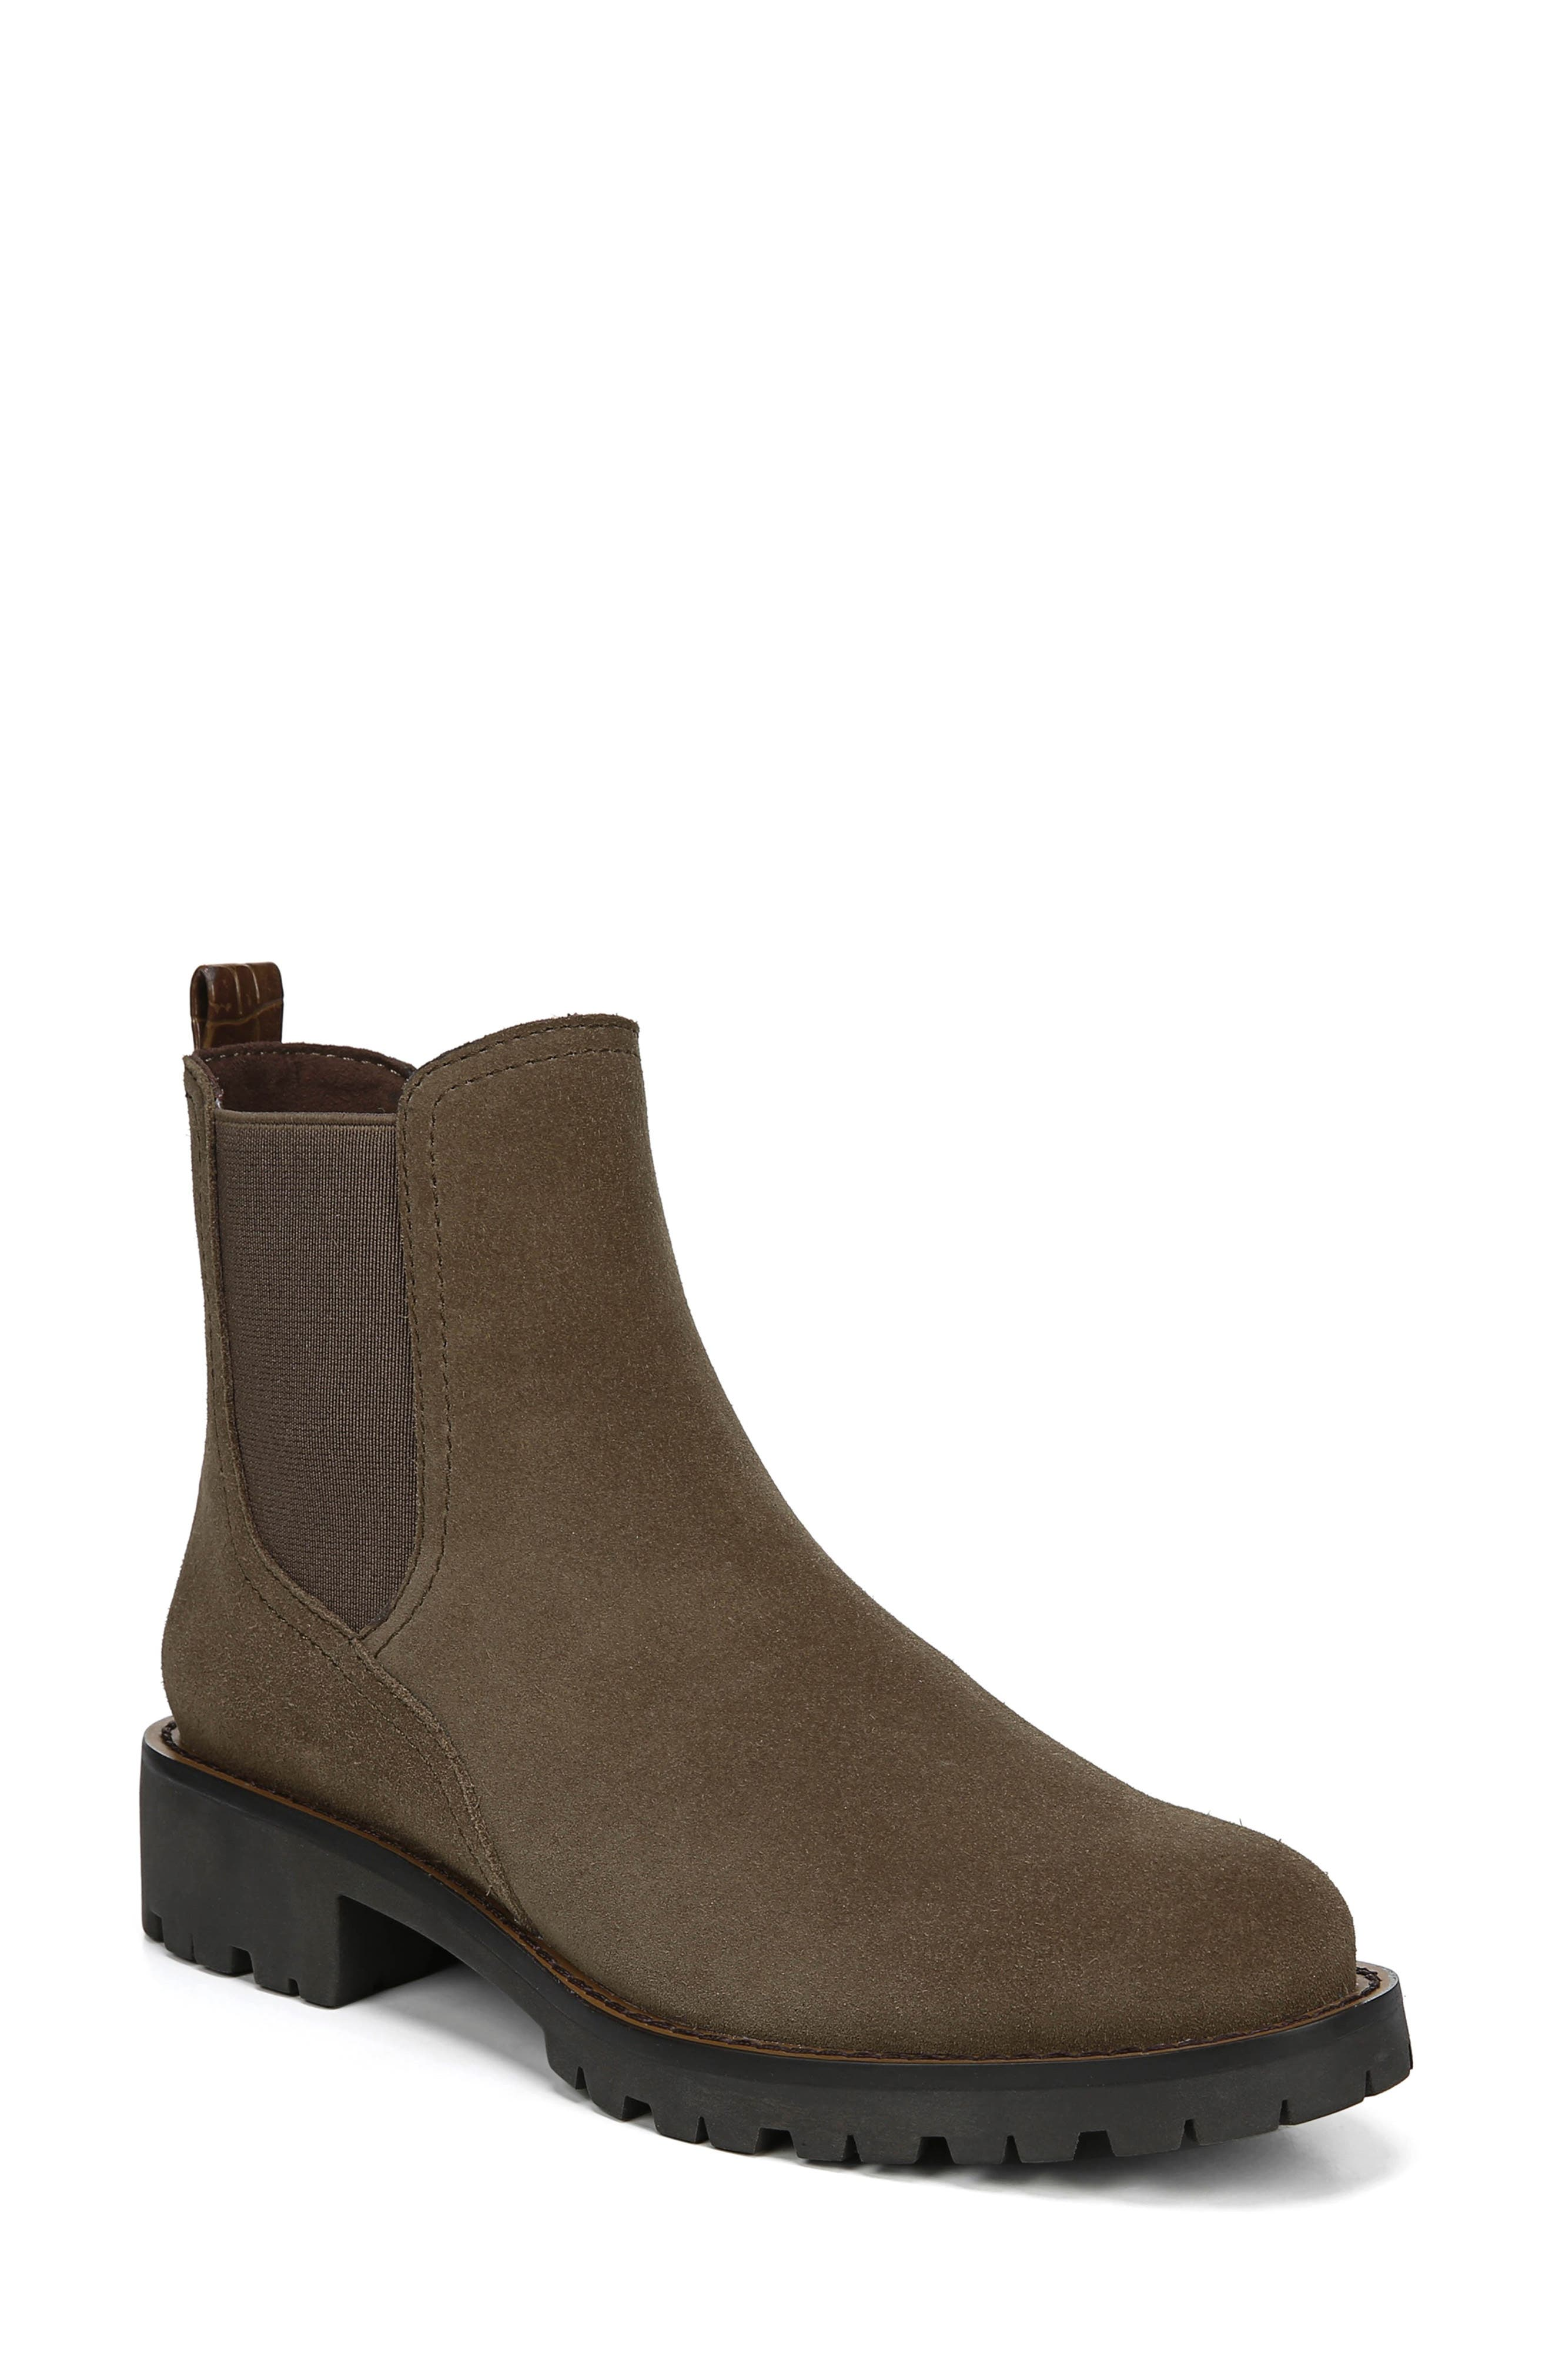 Sam Edelman Jaclyn Waterproof Chelsea Bootie, Brown